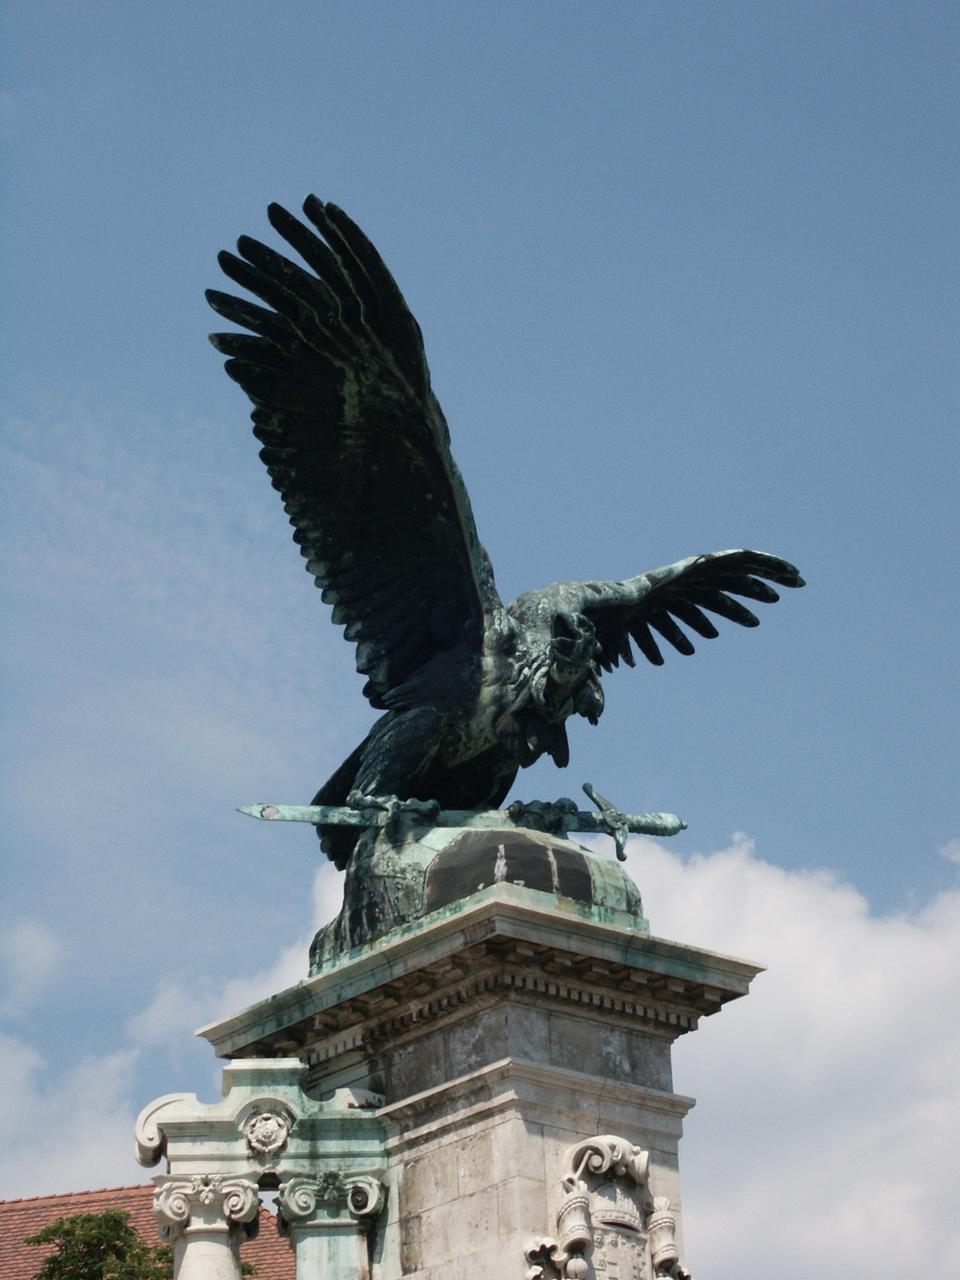 a sculpture of the mythical turul bird that guards the palace the